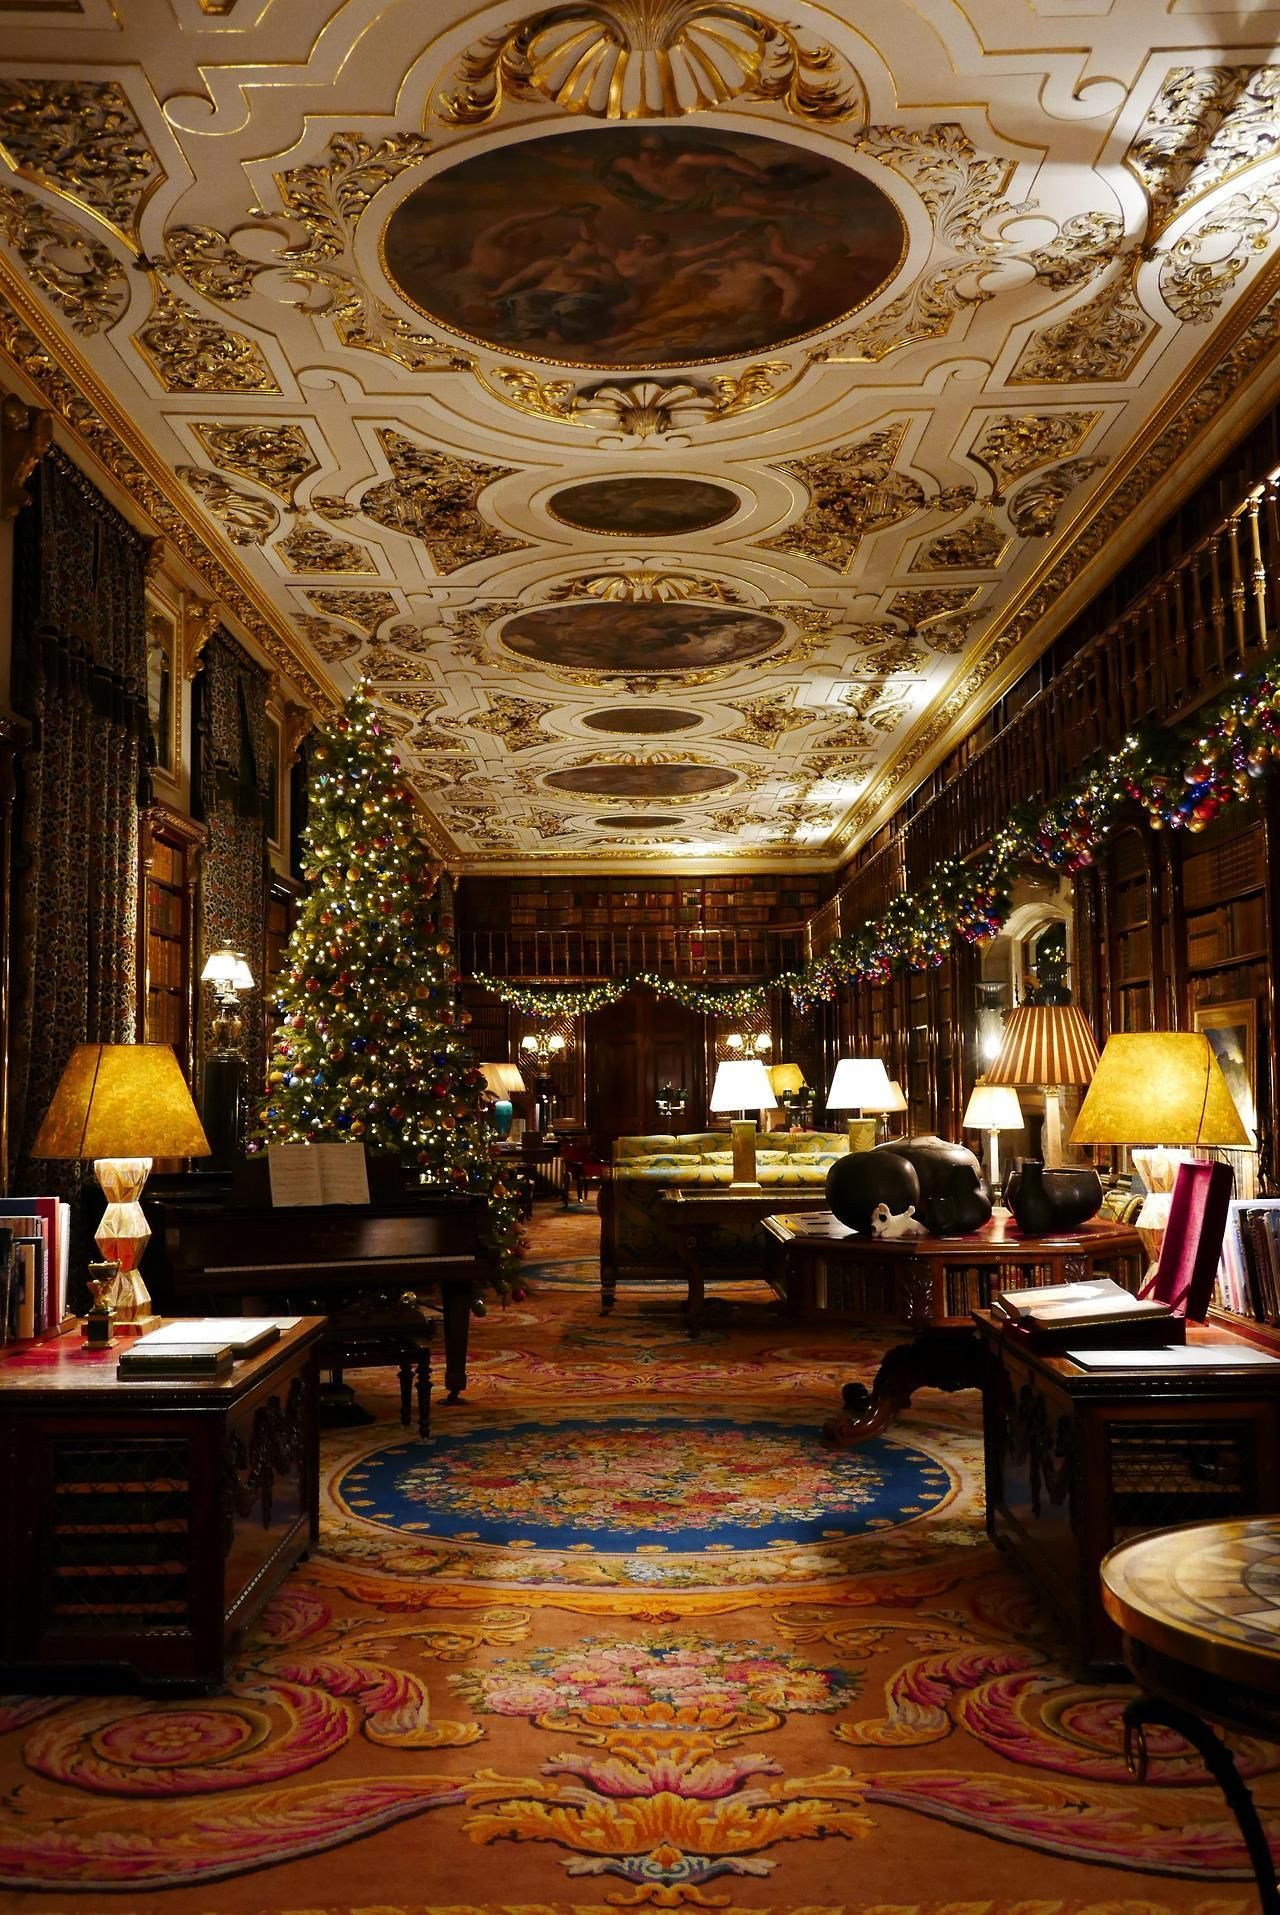 Chatsworth House Interior Layout: A Grand Room Decorated For A Victorian